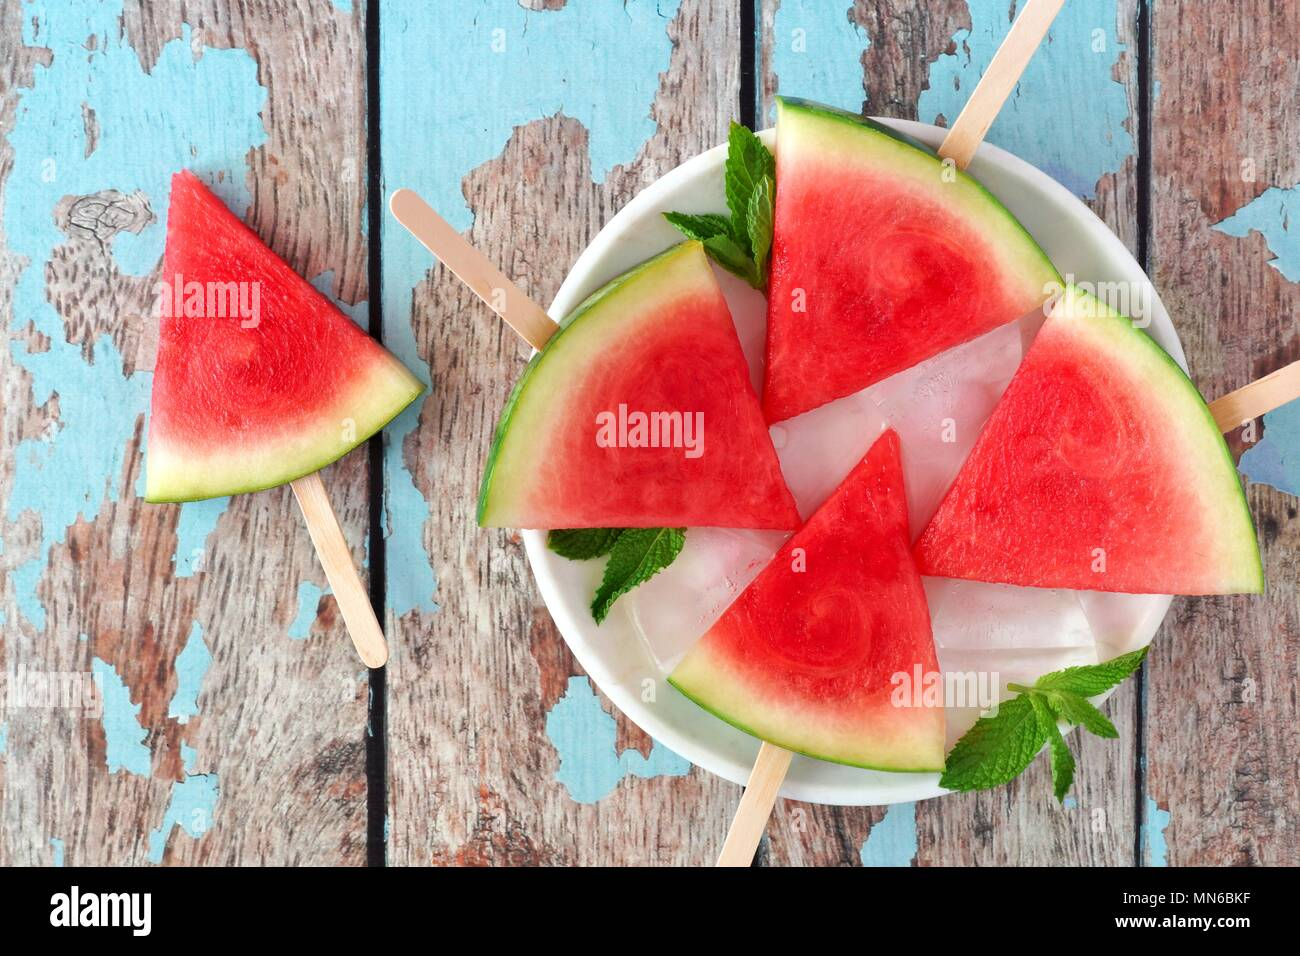 Watermelon slice popsicles on plate with a rustic blue wood background - Stock Image